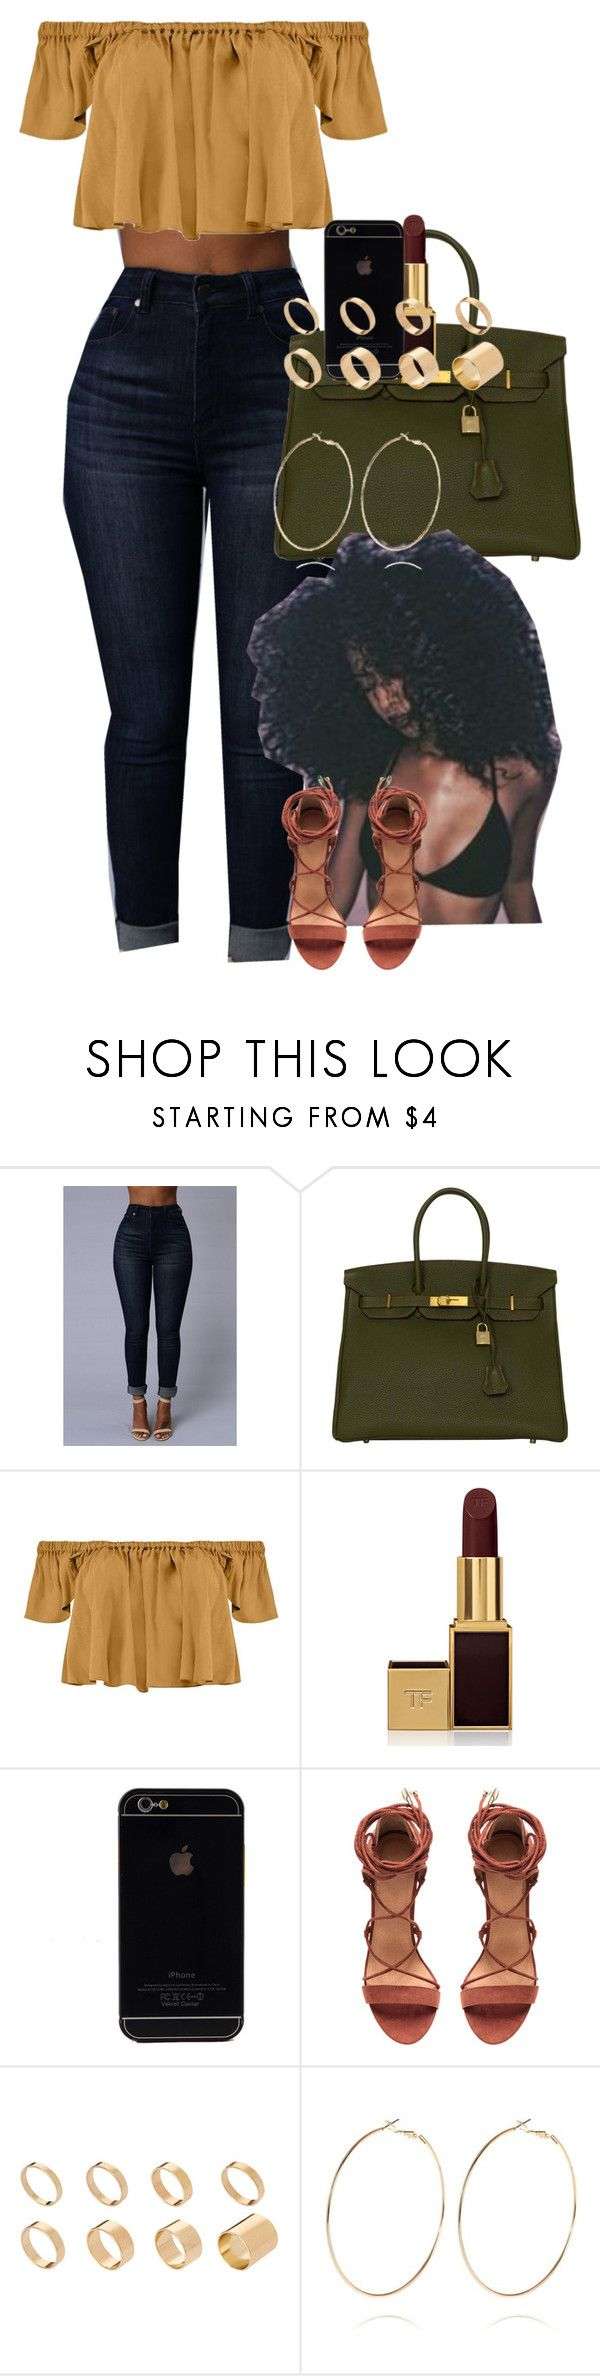 """""""BlackGirlMagic"""" by muvaaliyah ❤ liked on Polyvore featuring Hermès, Boohoo, Tom Ford, ASOS and River Island"""